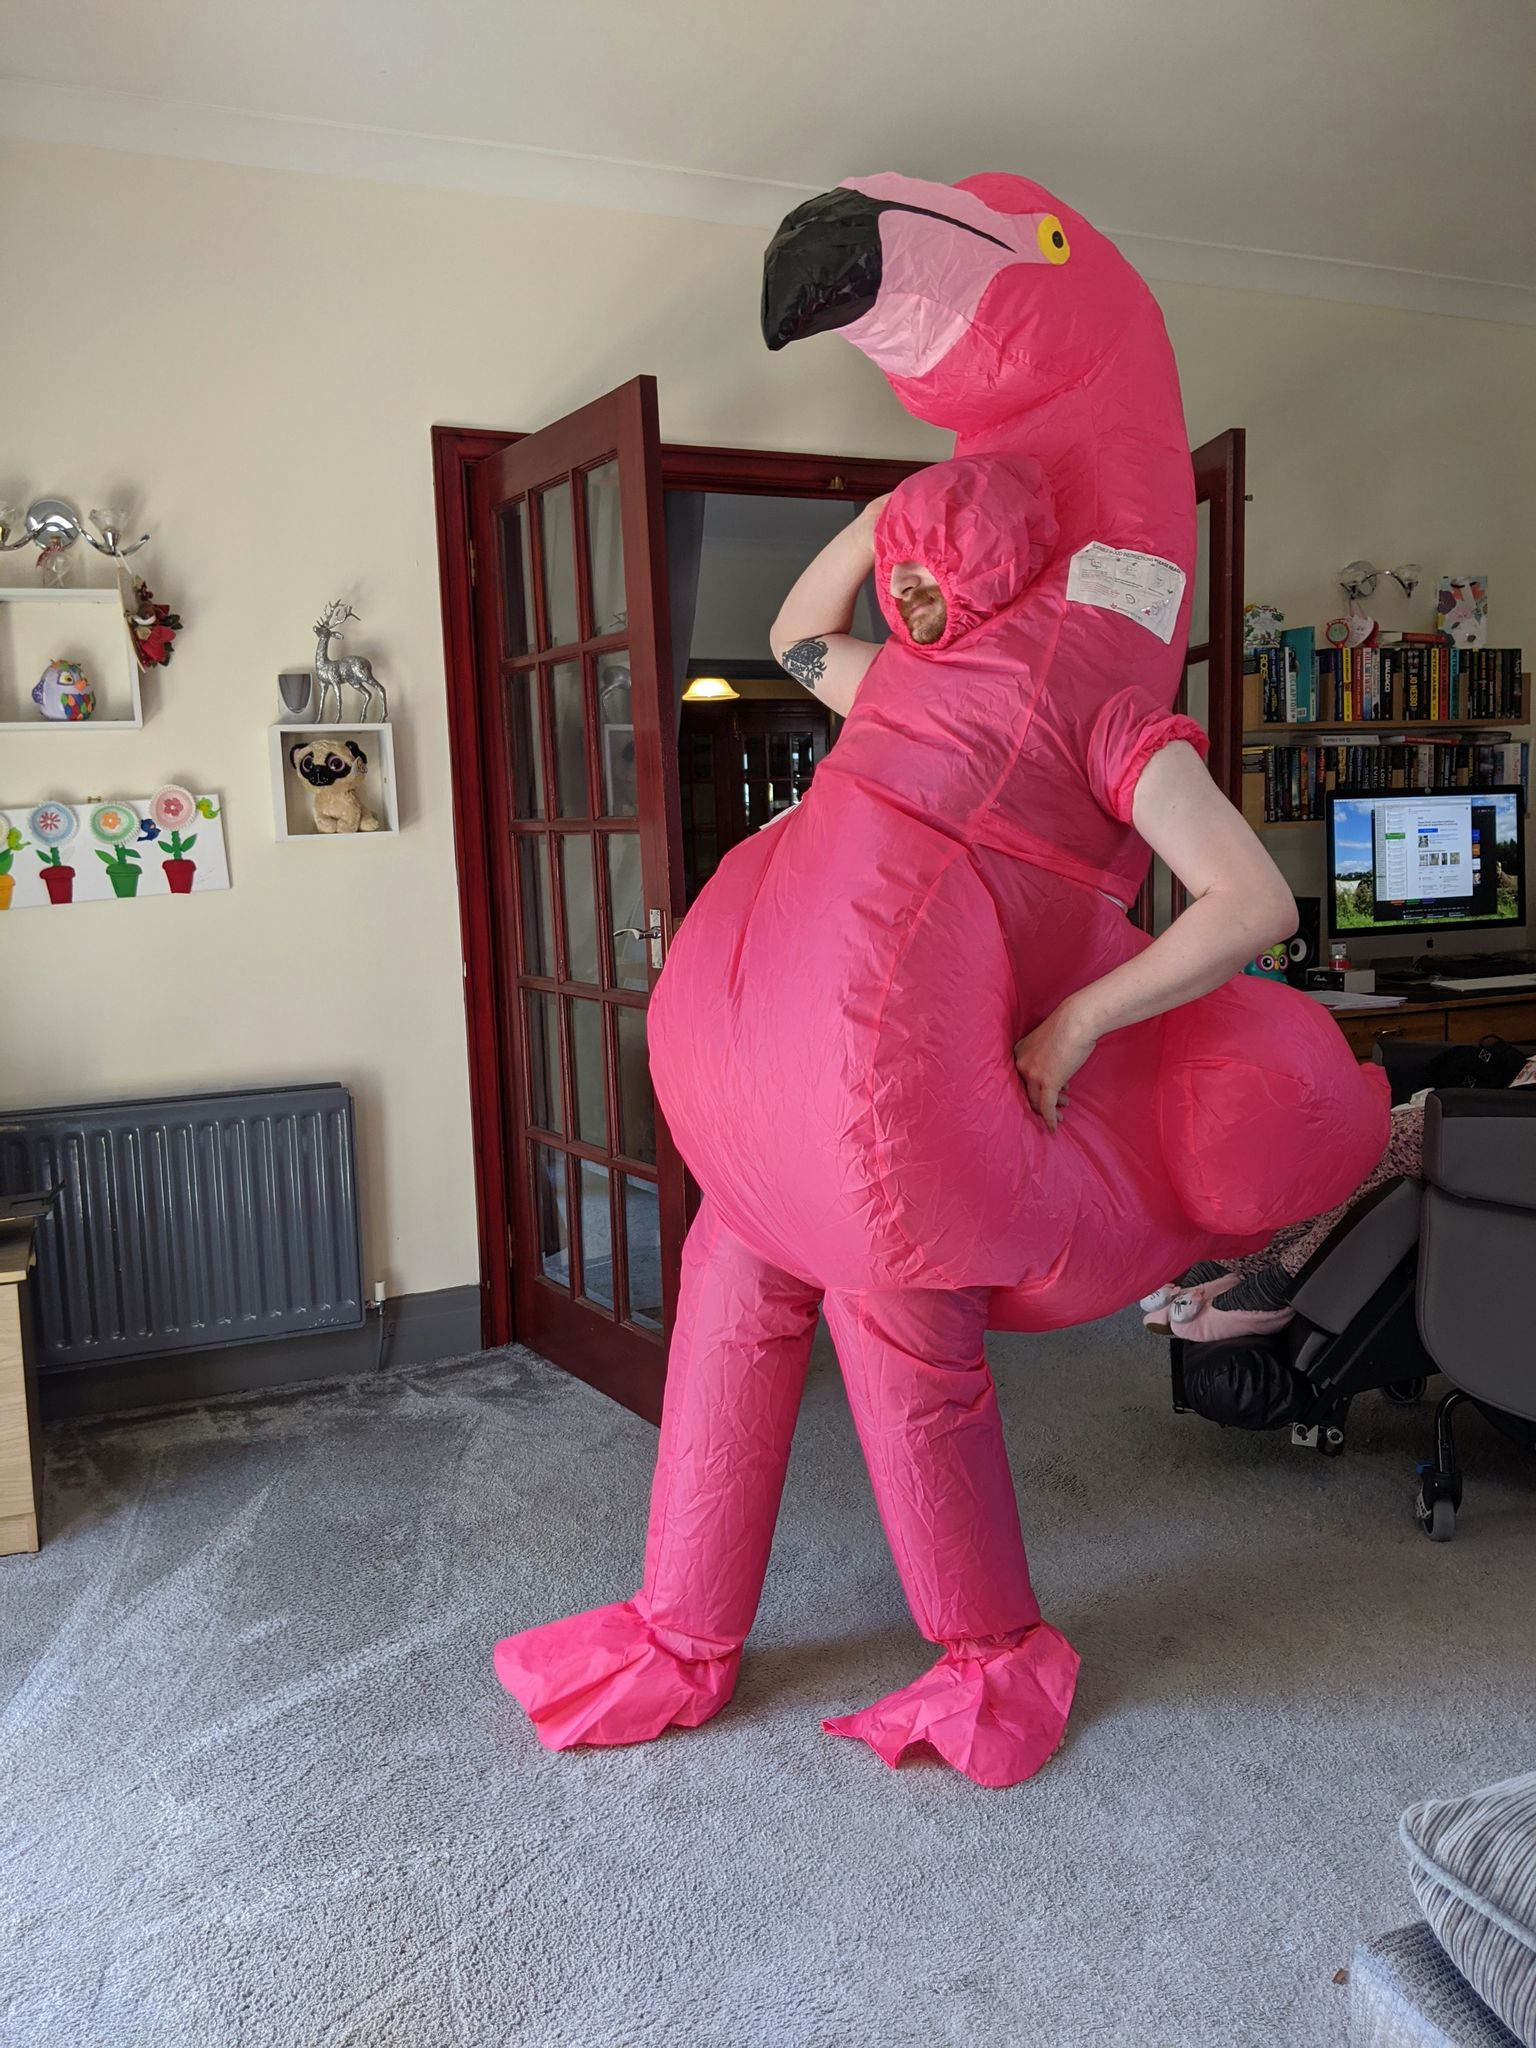 A large inflatable flamingo suit reaching almost to the ceiling of the room. Belry's arms and the lower half of his face are visible, looking uncomfortable.  The strange things he does for Penance RPG! Keywords: Phobias & Flamingo suits.